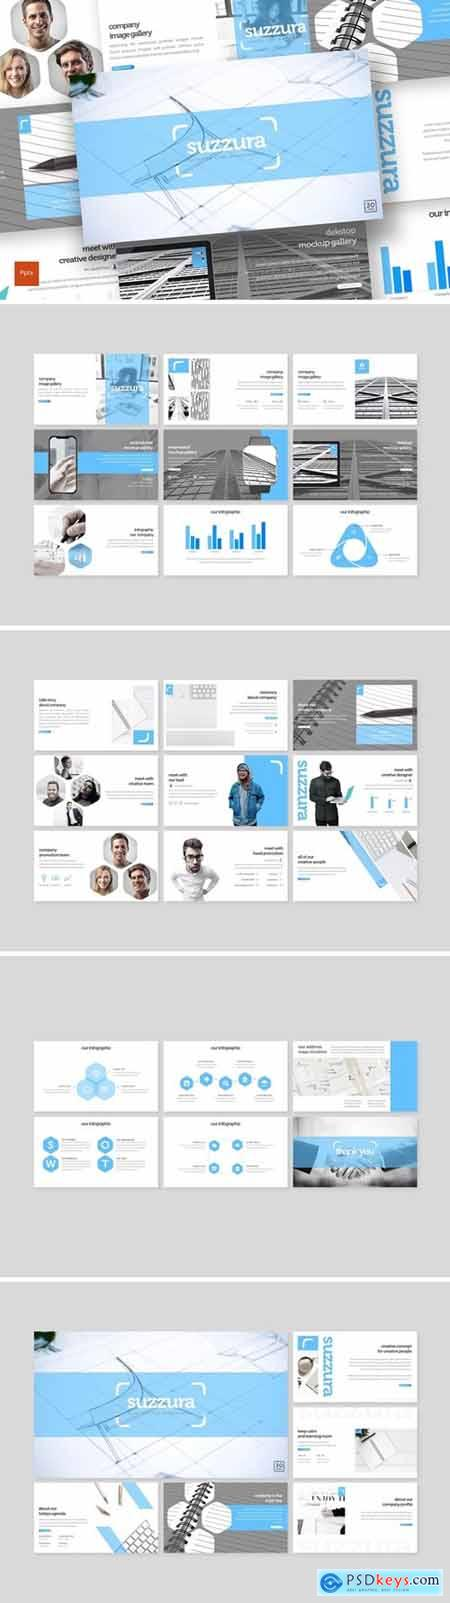 Suzzura Powerpoint, Keynote and Google Slides Templates